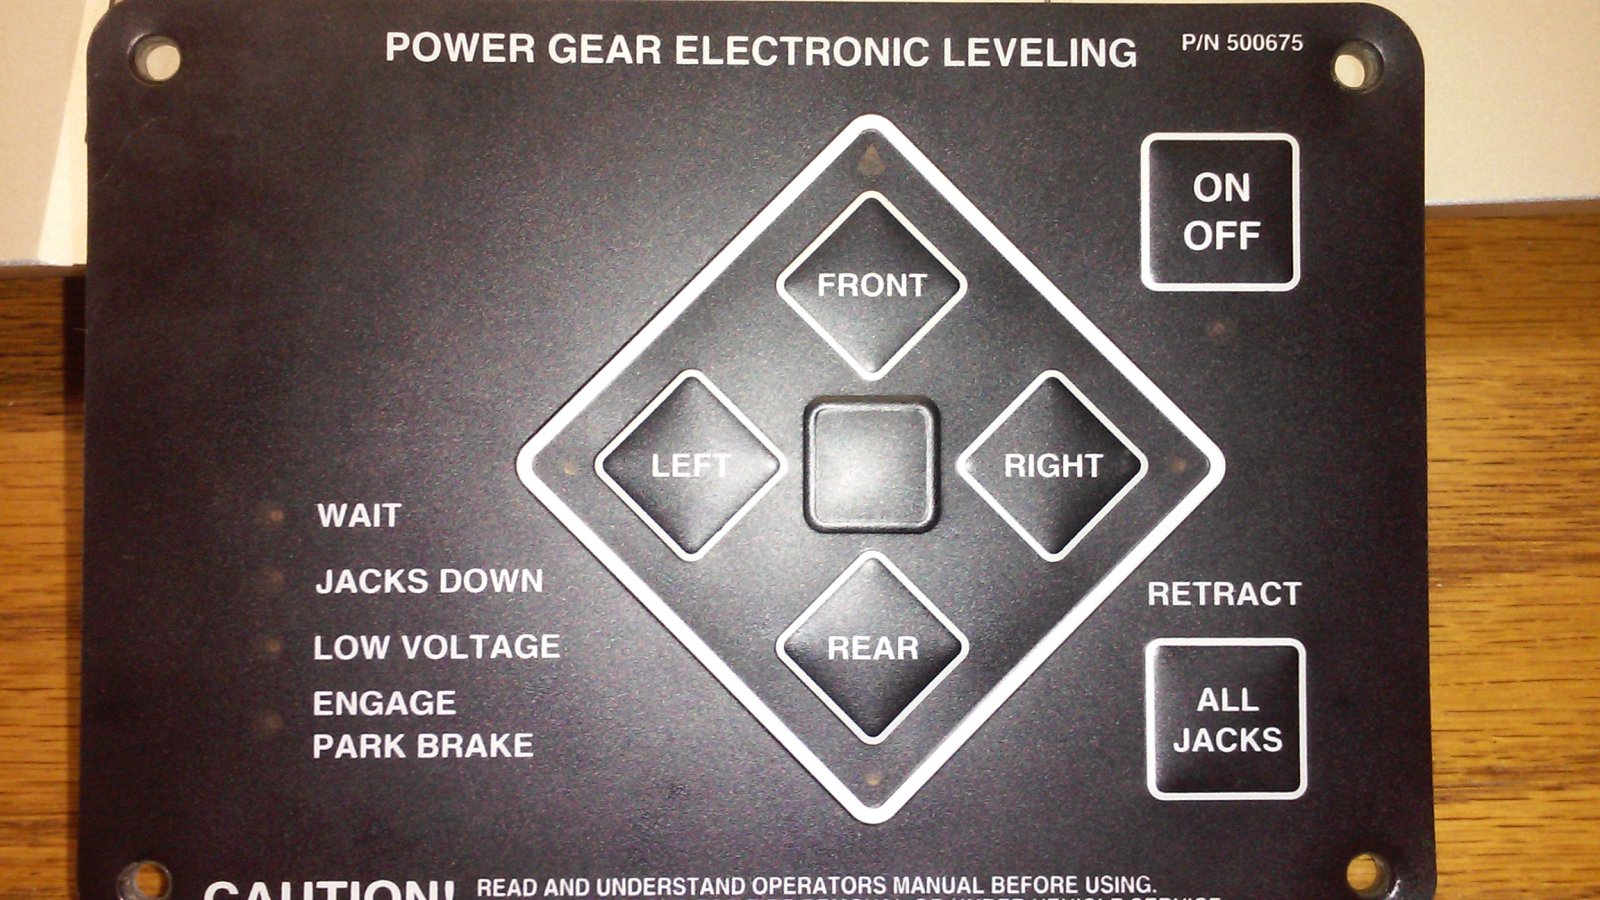 Need help wiring Power Gear Leveling Touch Panel: 500675